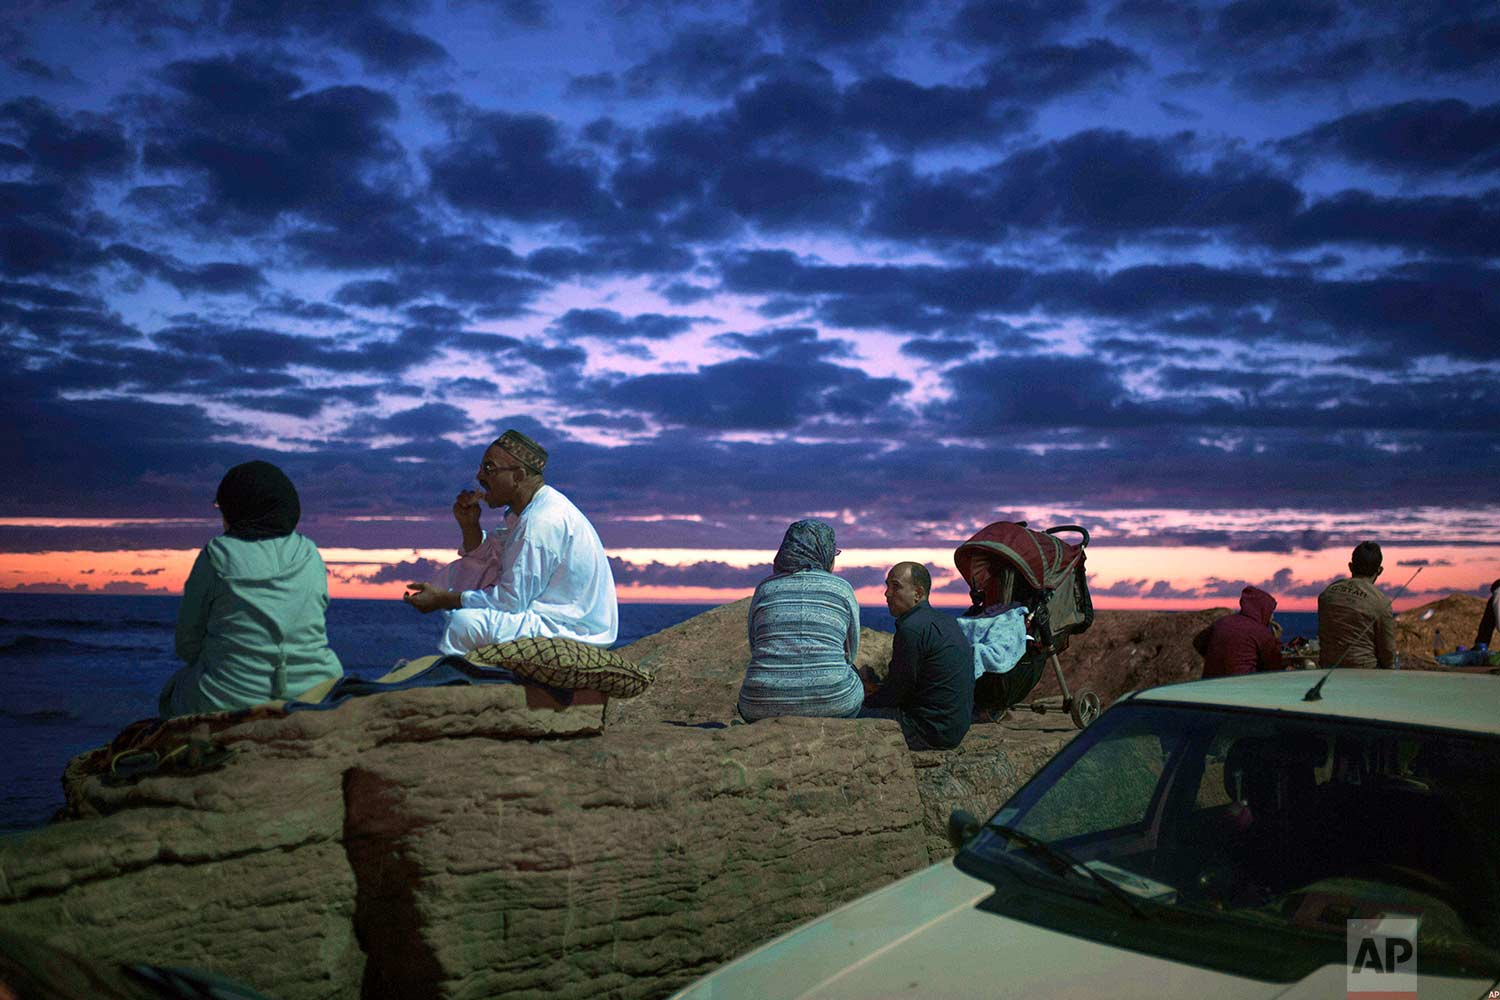 Couples observe the sunset as they break their fast on the beach in the holy month of Ramadan, Rabat, Morocco, Saturday, June 9, 2018. (AP Photo/Mosa'ab Elshamy)